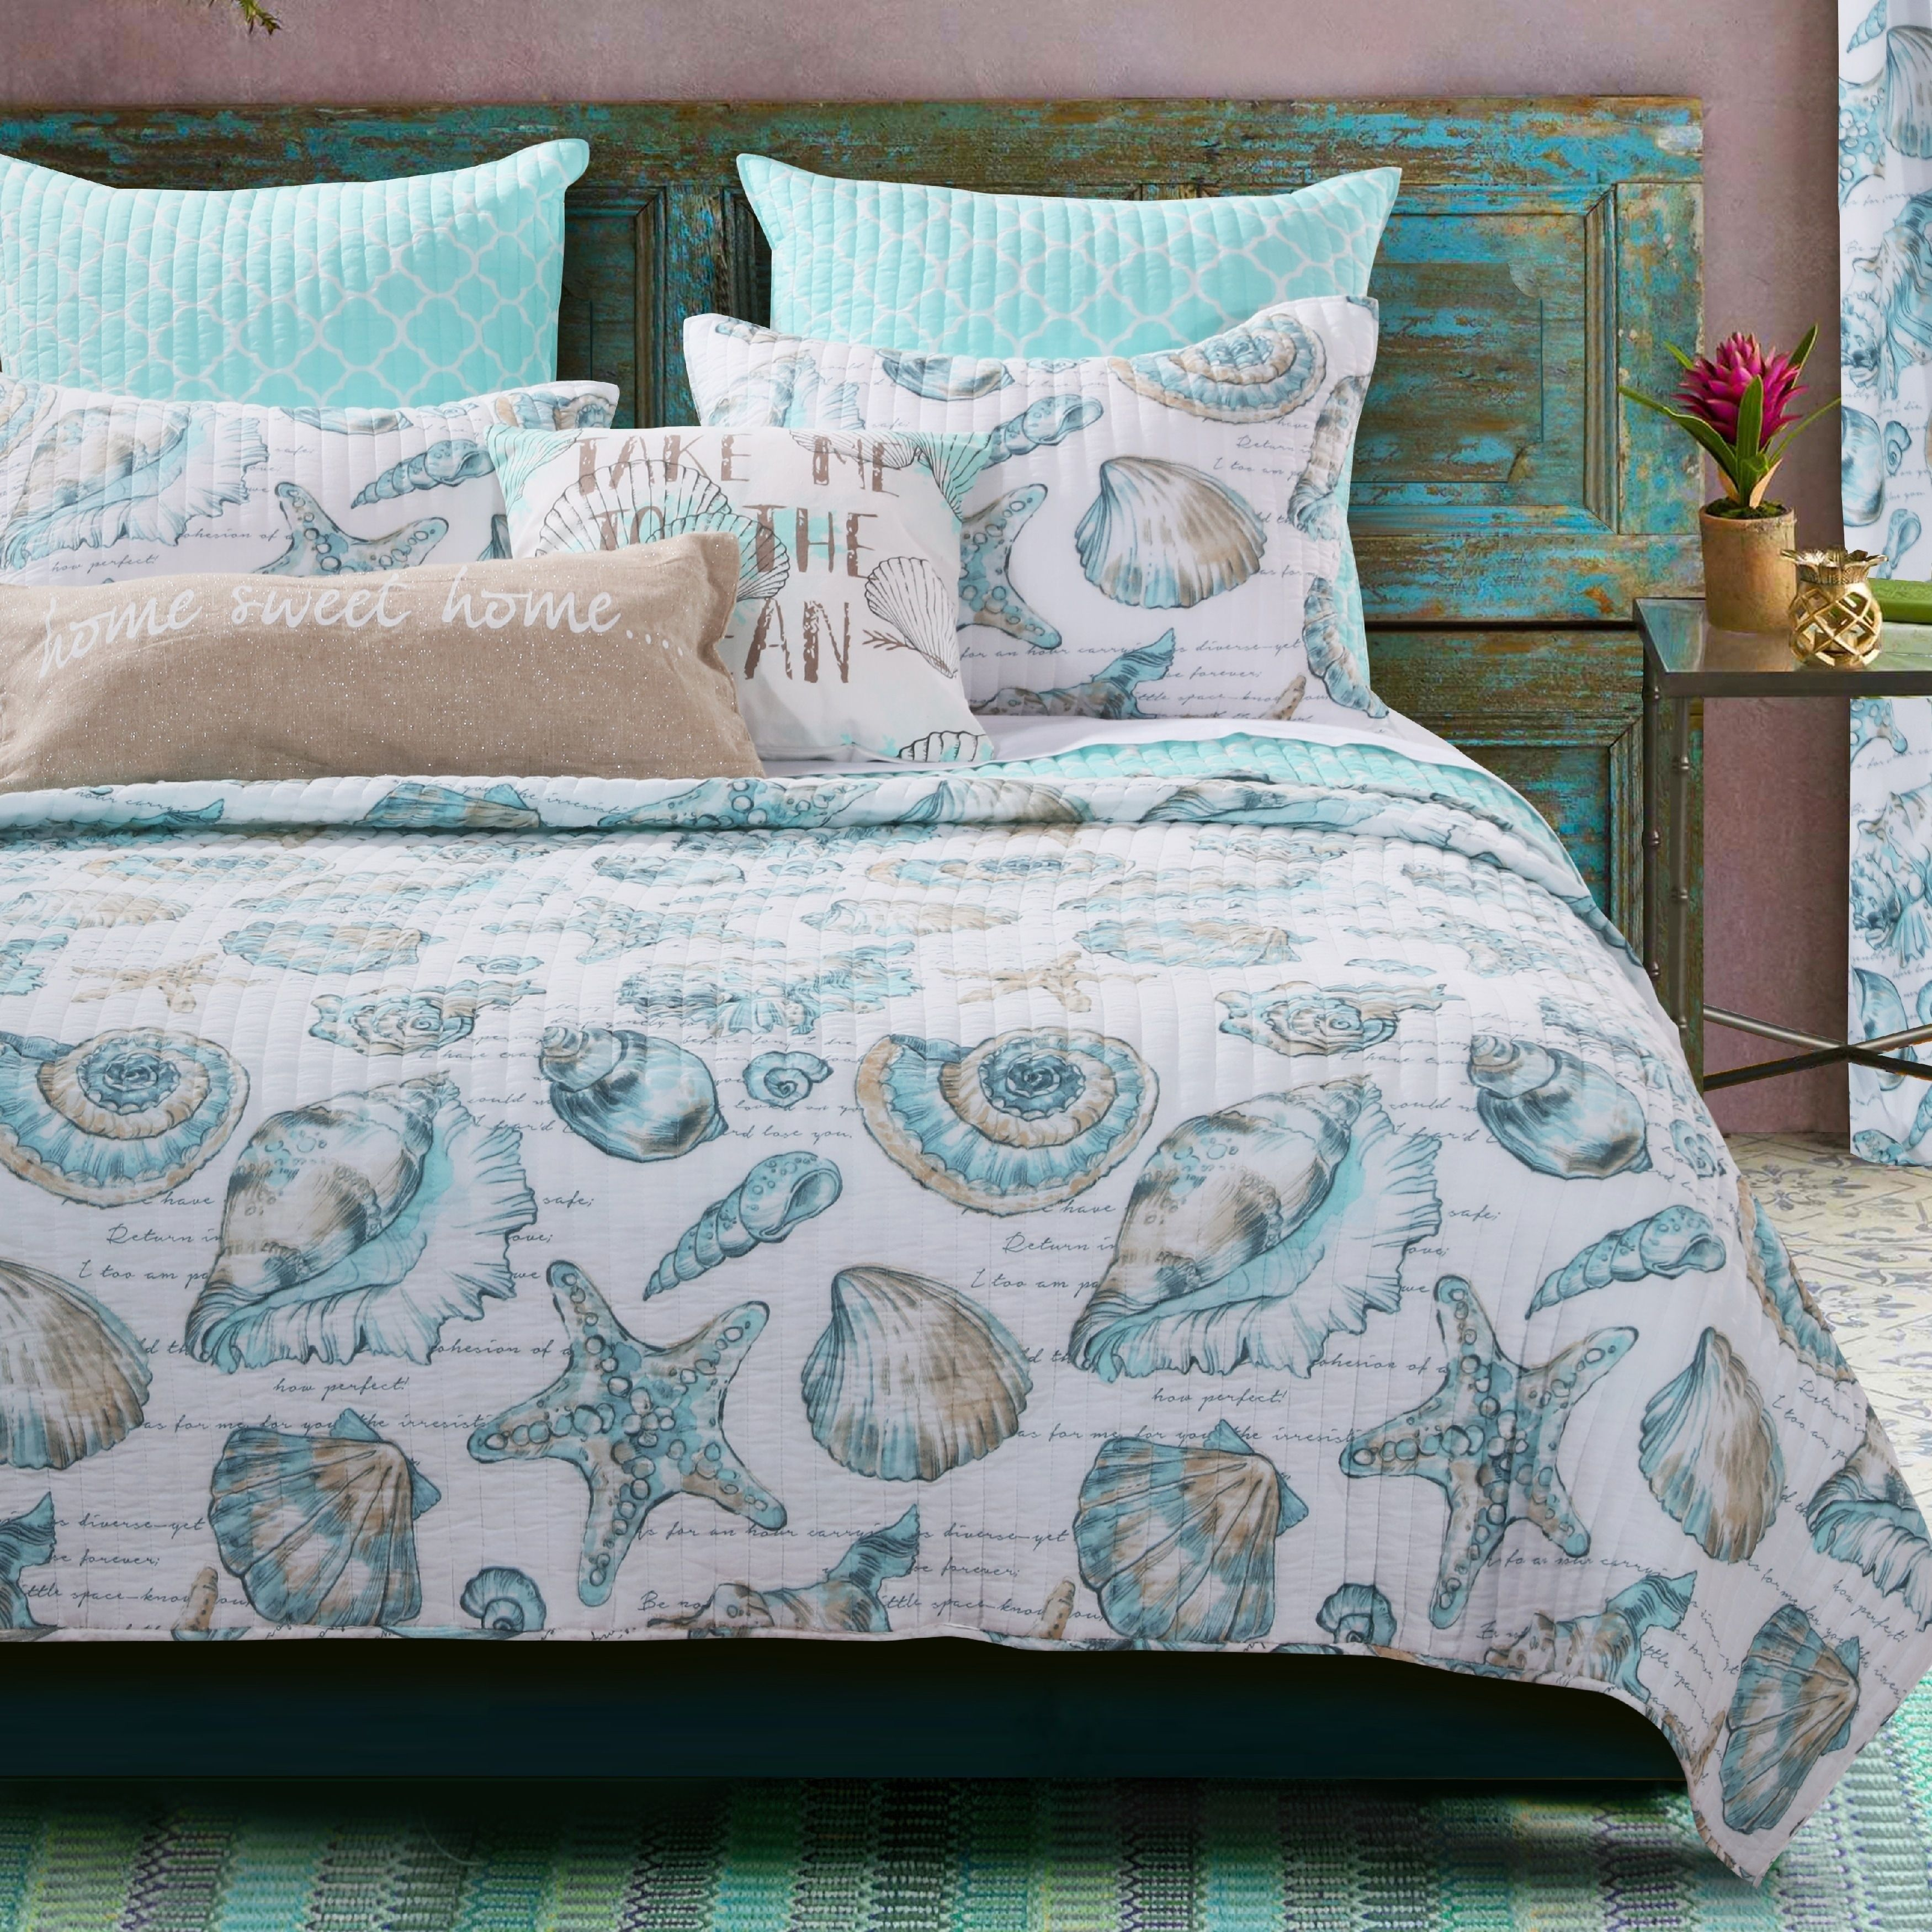 Linen Plus Full//Queen 3pc Over Size Quilted Bedspread Floral Turquoise Grey White Navy Blue